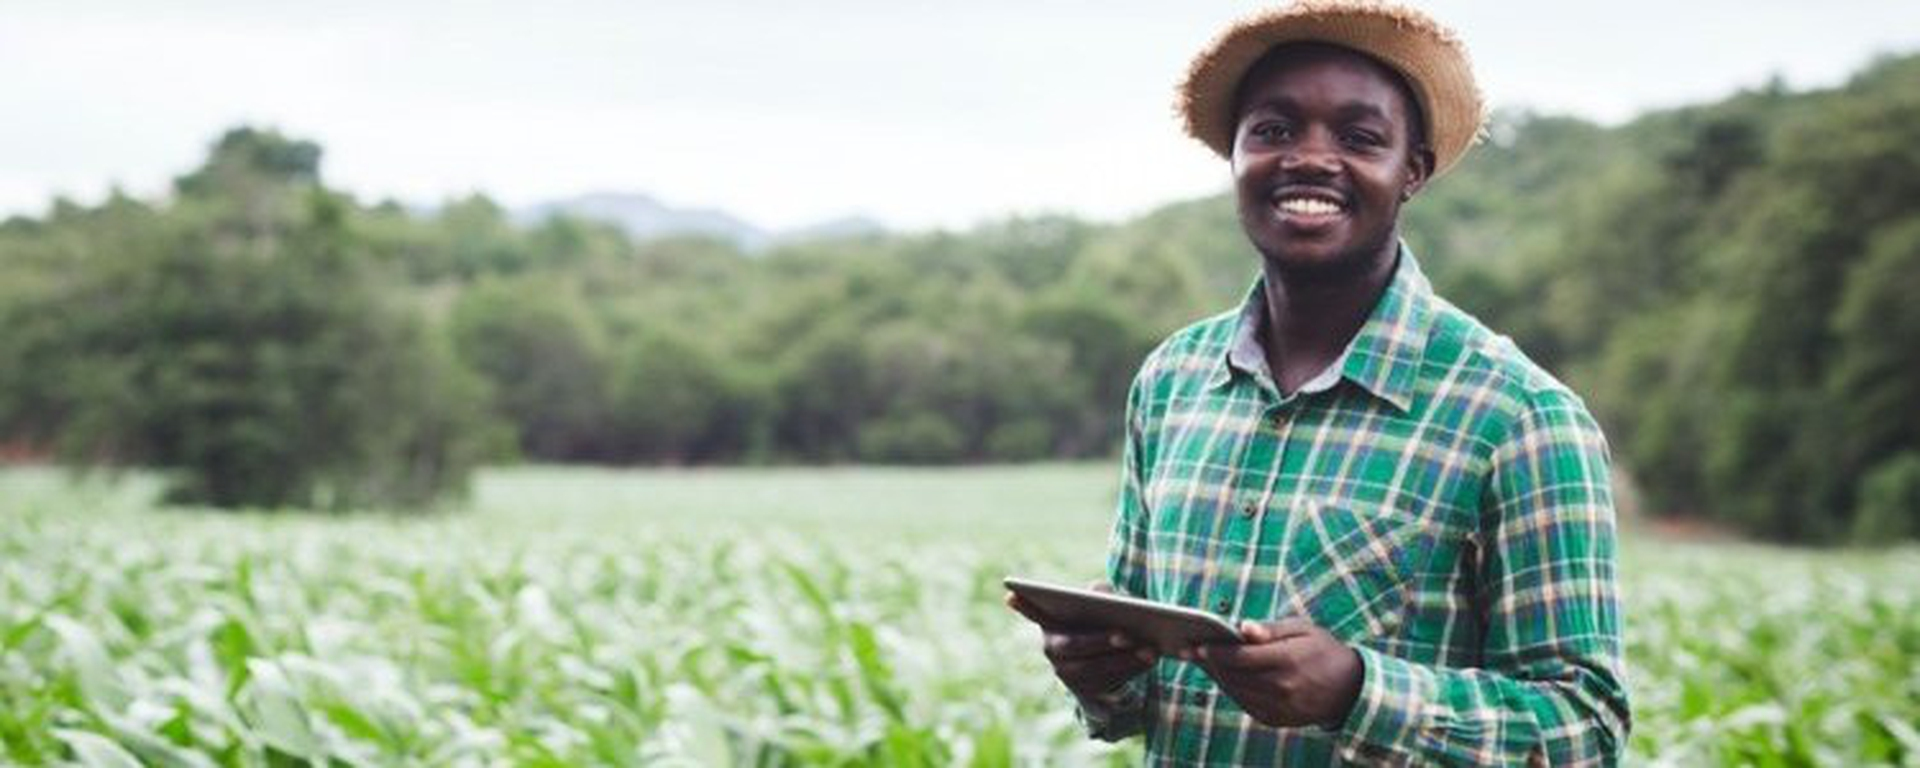 Wageningen Centre for Development Innovation - The African Food Fellowship Movemeback African initiative cover image